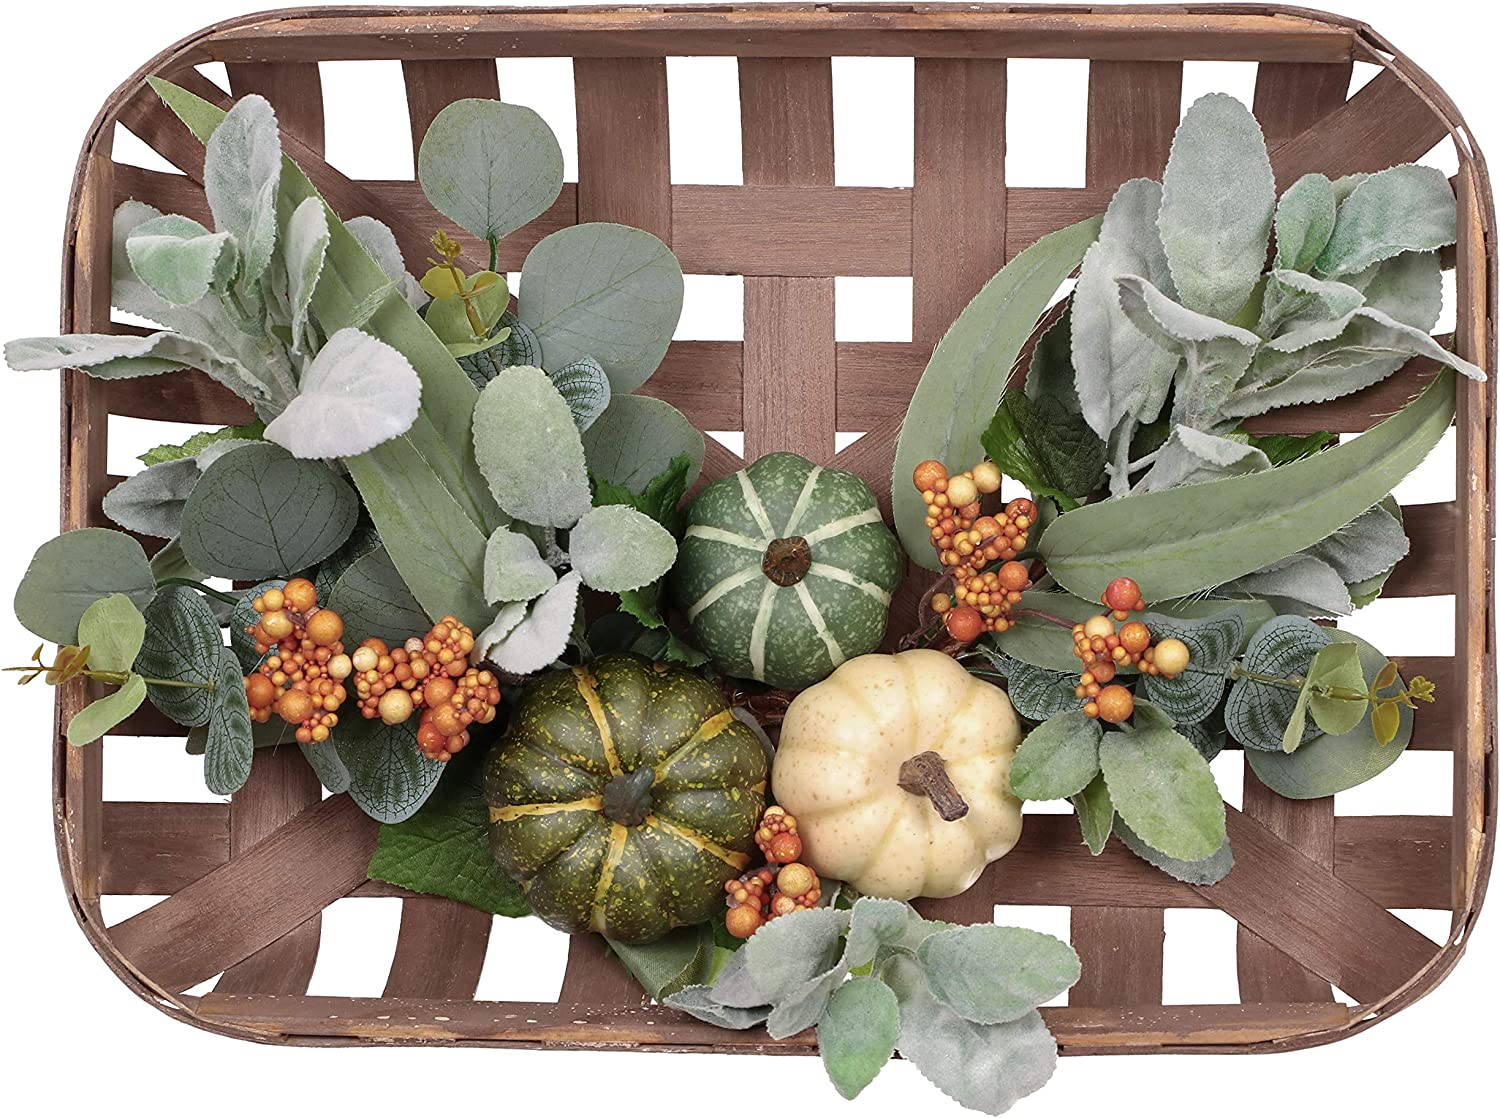 Valery Madelyn Fall Wreath with Basket for Home Decor, Thanksgiving Halloween Front Door Wreath, Tobacco Centerpieces with Pumpkin Eucalyptus Greenery Farmhouse Rustic Indoor Wall Christmas Decoration